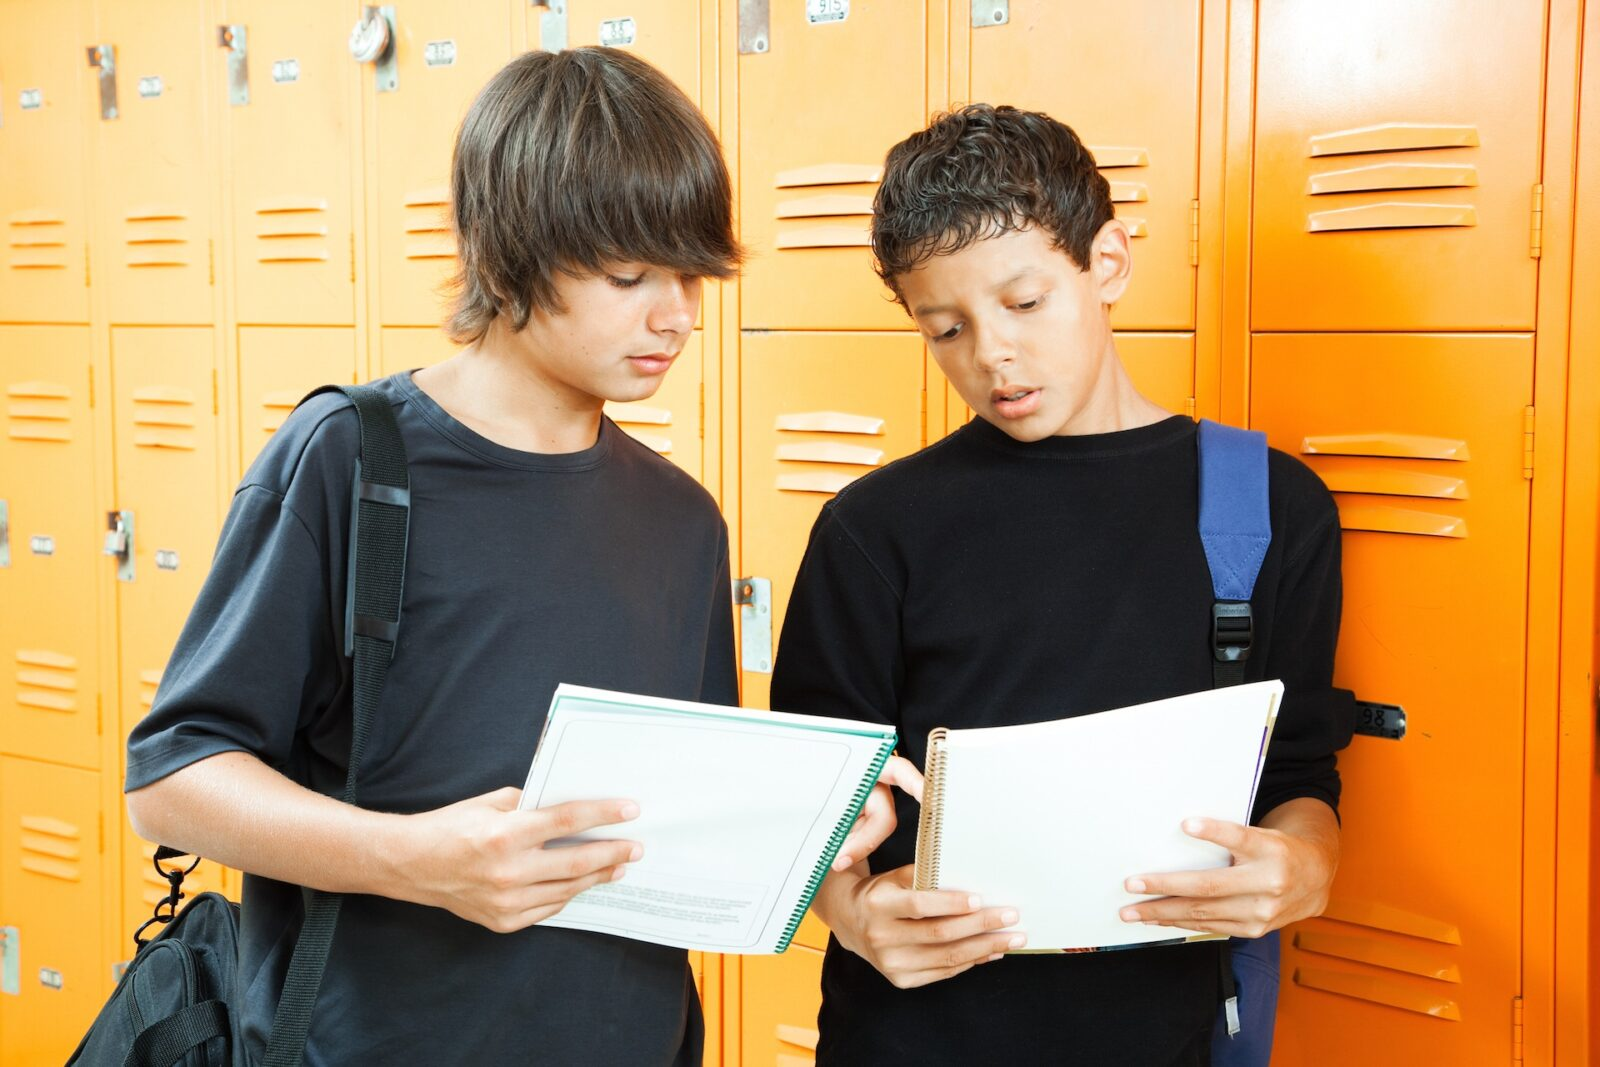 Teen Boys Comparing Homework